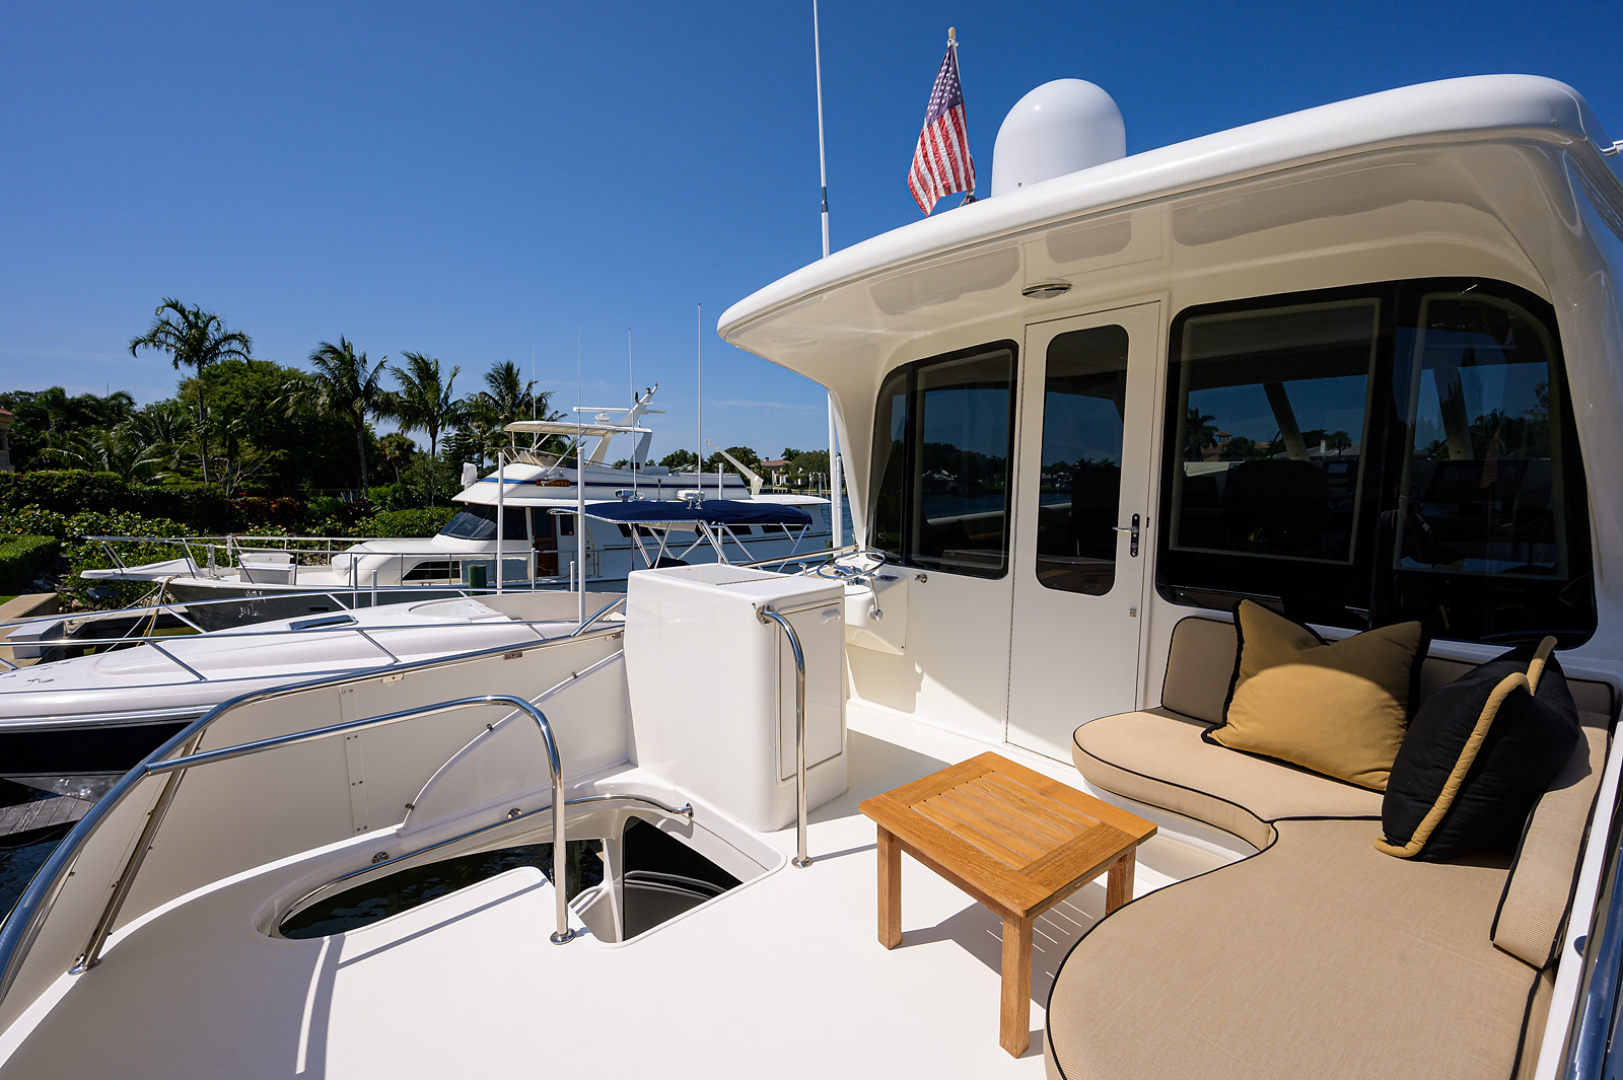 Ocean Yachts-Odyssey 2005-MISS JAN Palm Beach Gardens-Florida-United States-Enclosed Flybridge Aft Deck-1387030 | Thumbnail